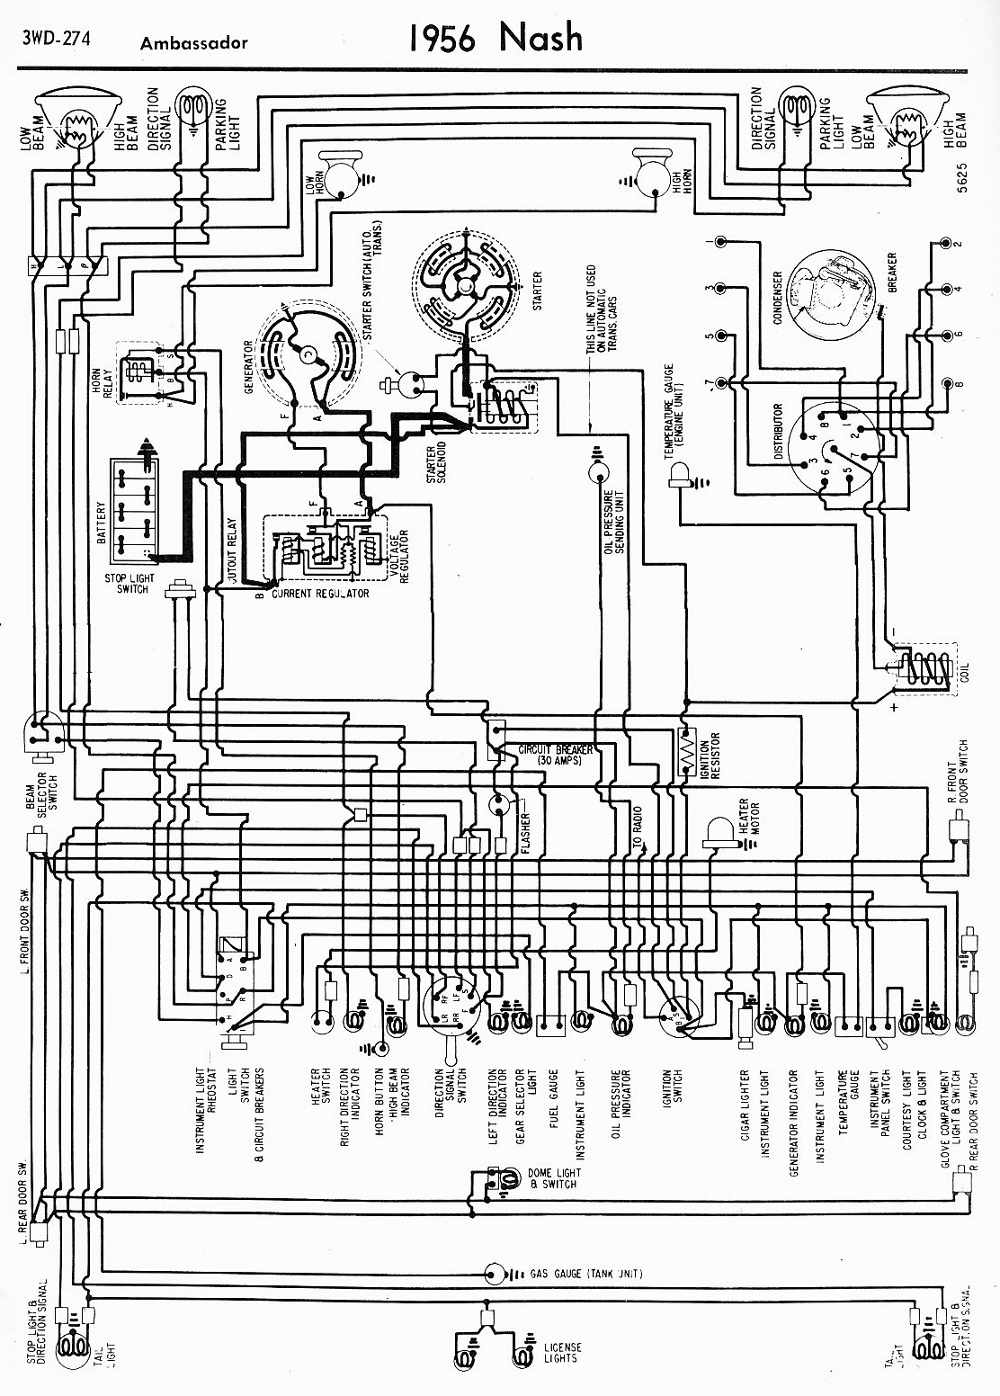 medium resolution of appealing 1956 ford thunderbird ignition switch wiring diagram 71 ford ignition switch diagram 1956 ford thunderbird